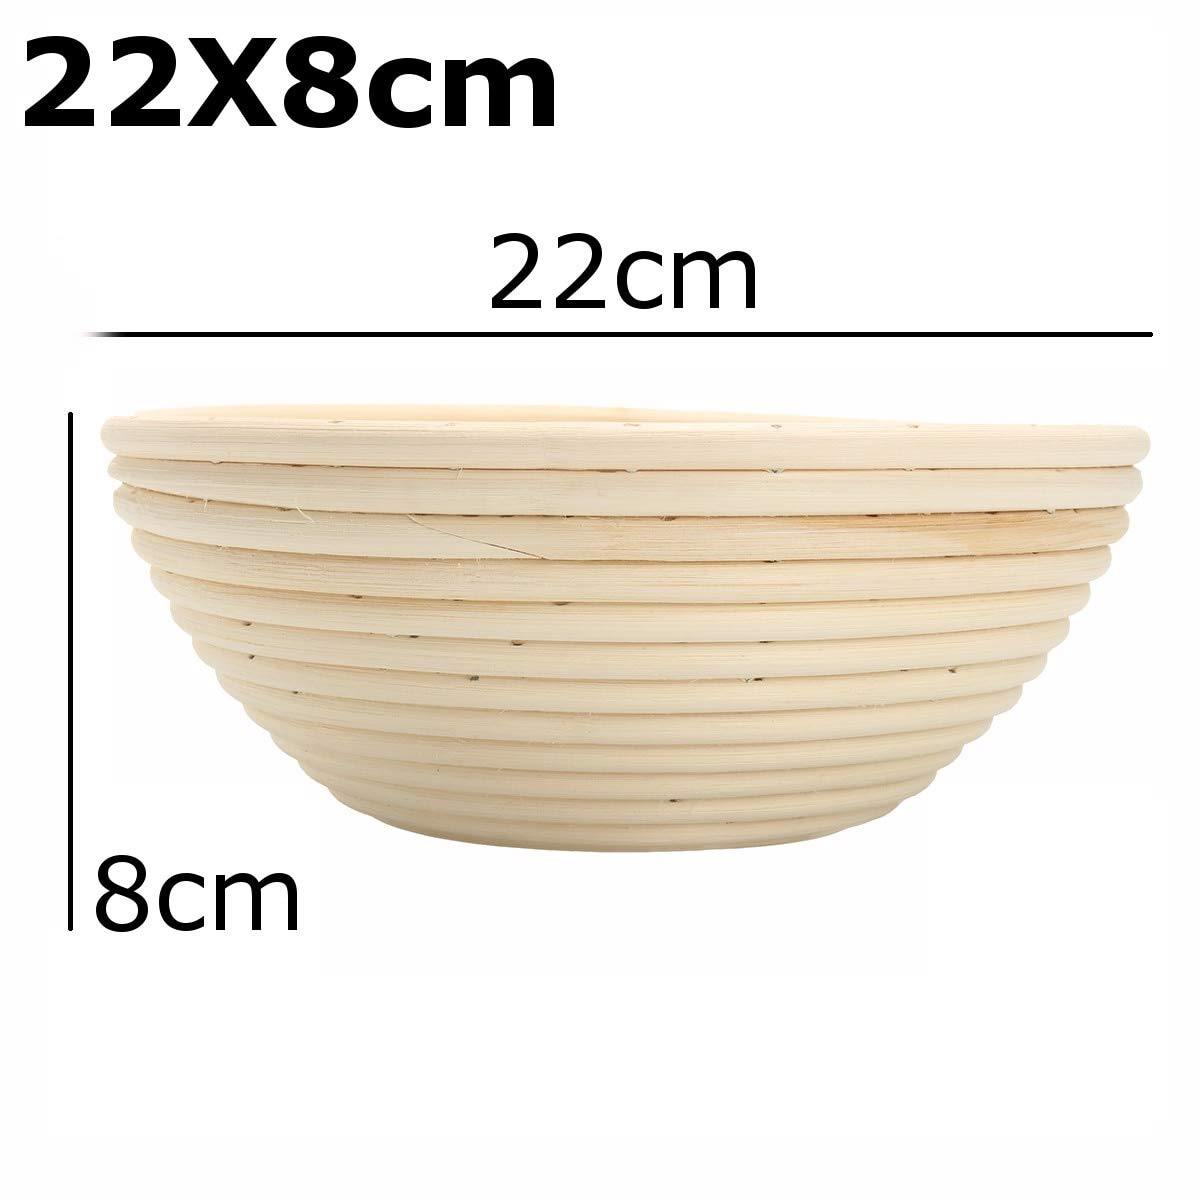 Best Quality - Storage Baskets - Bread Basket Banneton Brotform Rattan Proofing Basket Liner Round Oval Fruit Tray Dough Food Storage Container Organizer Basket - by GTIN - 1 PCs by HIBISCUS. (Image #7)